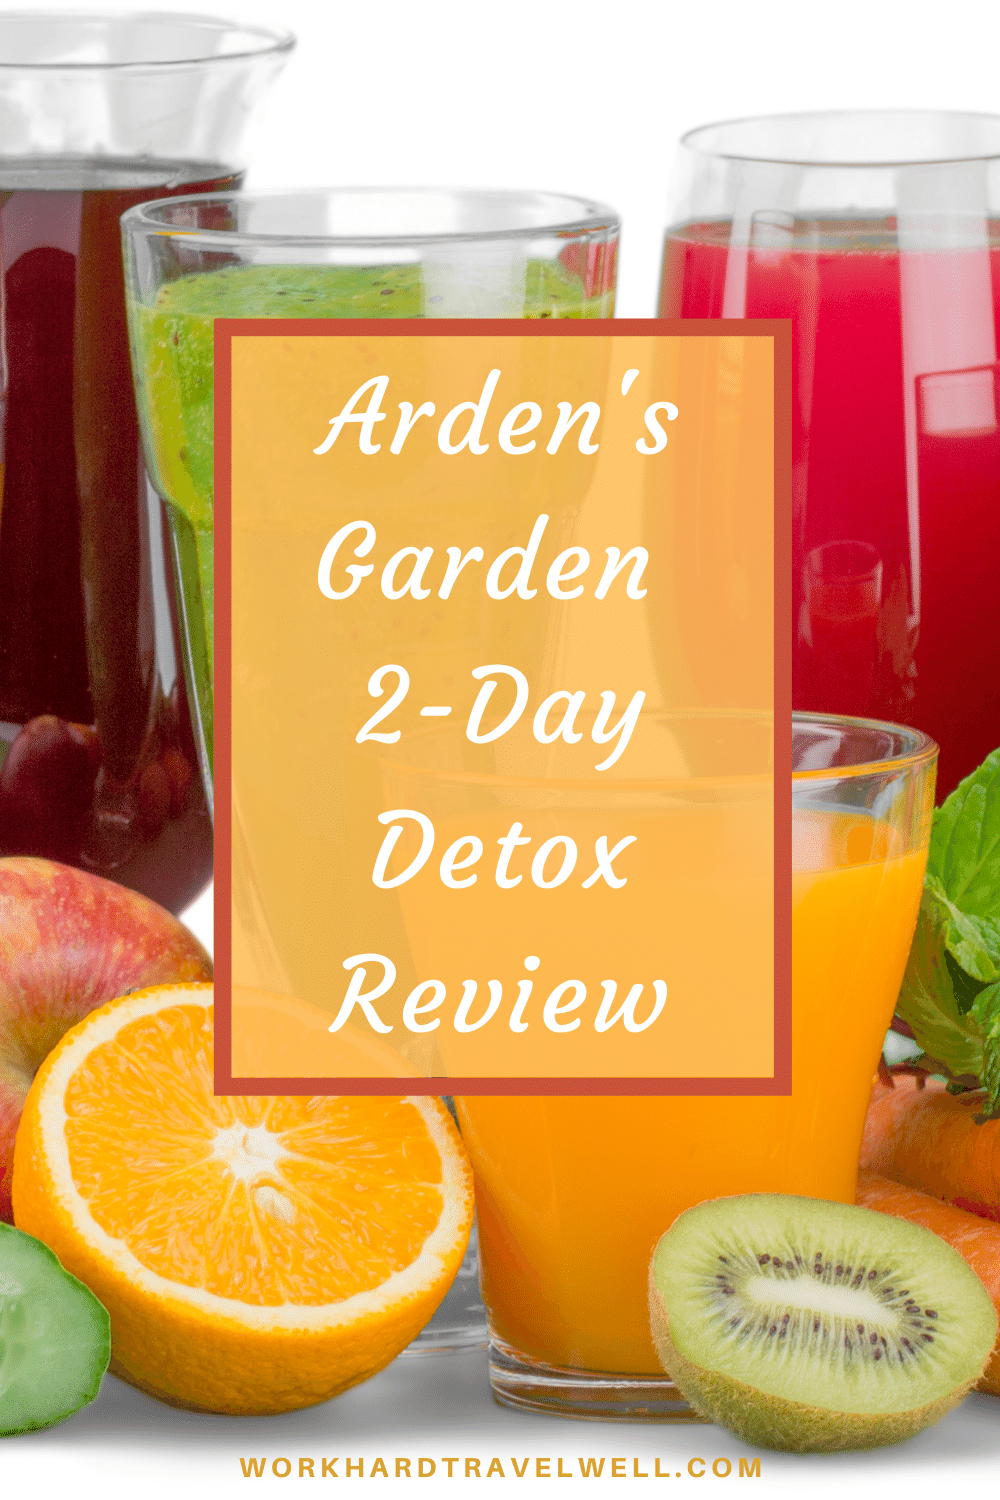 A Review Of Arden S Garden 2 Day Detox And The Before And After Via Worktravelwell In 2021 Detox Reviews 2 Day Detox Detox Before And After